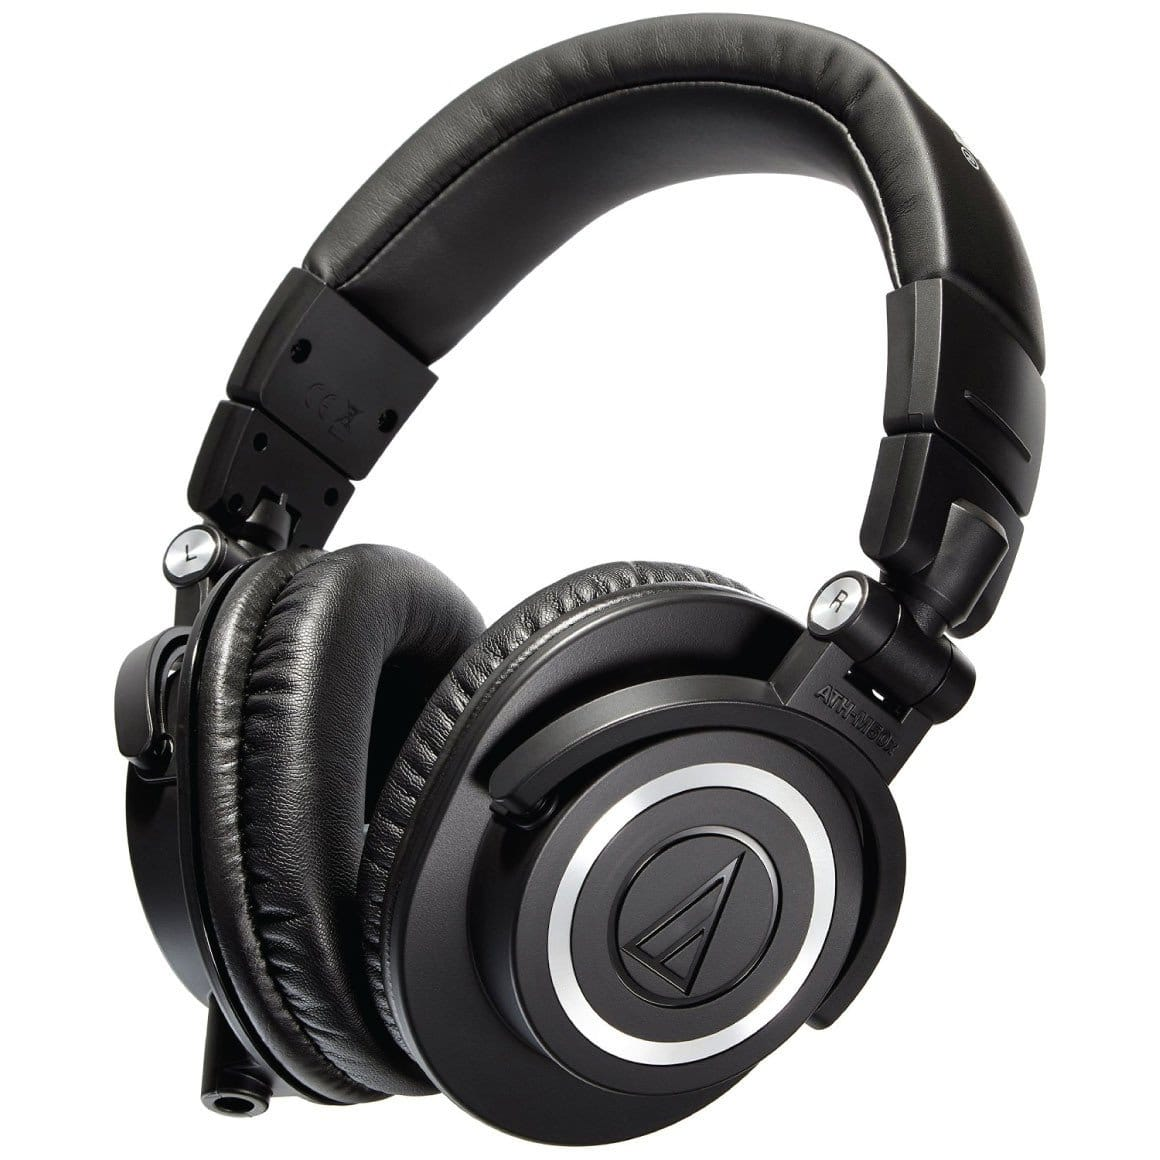 cymatics-best dj headphones-ath m50x